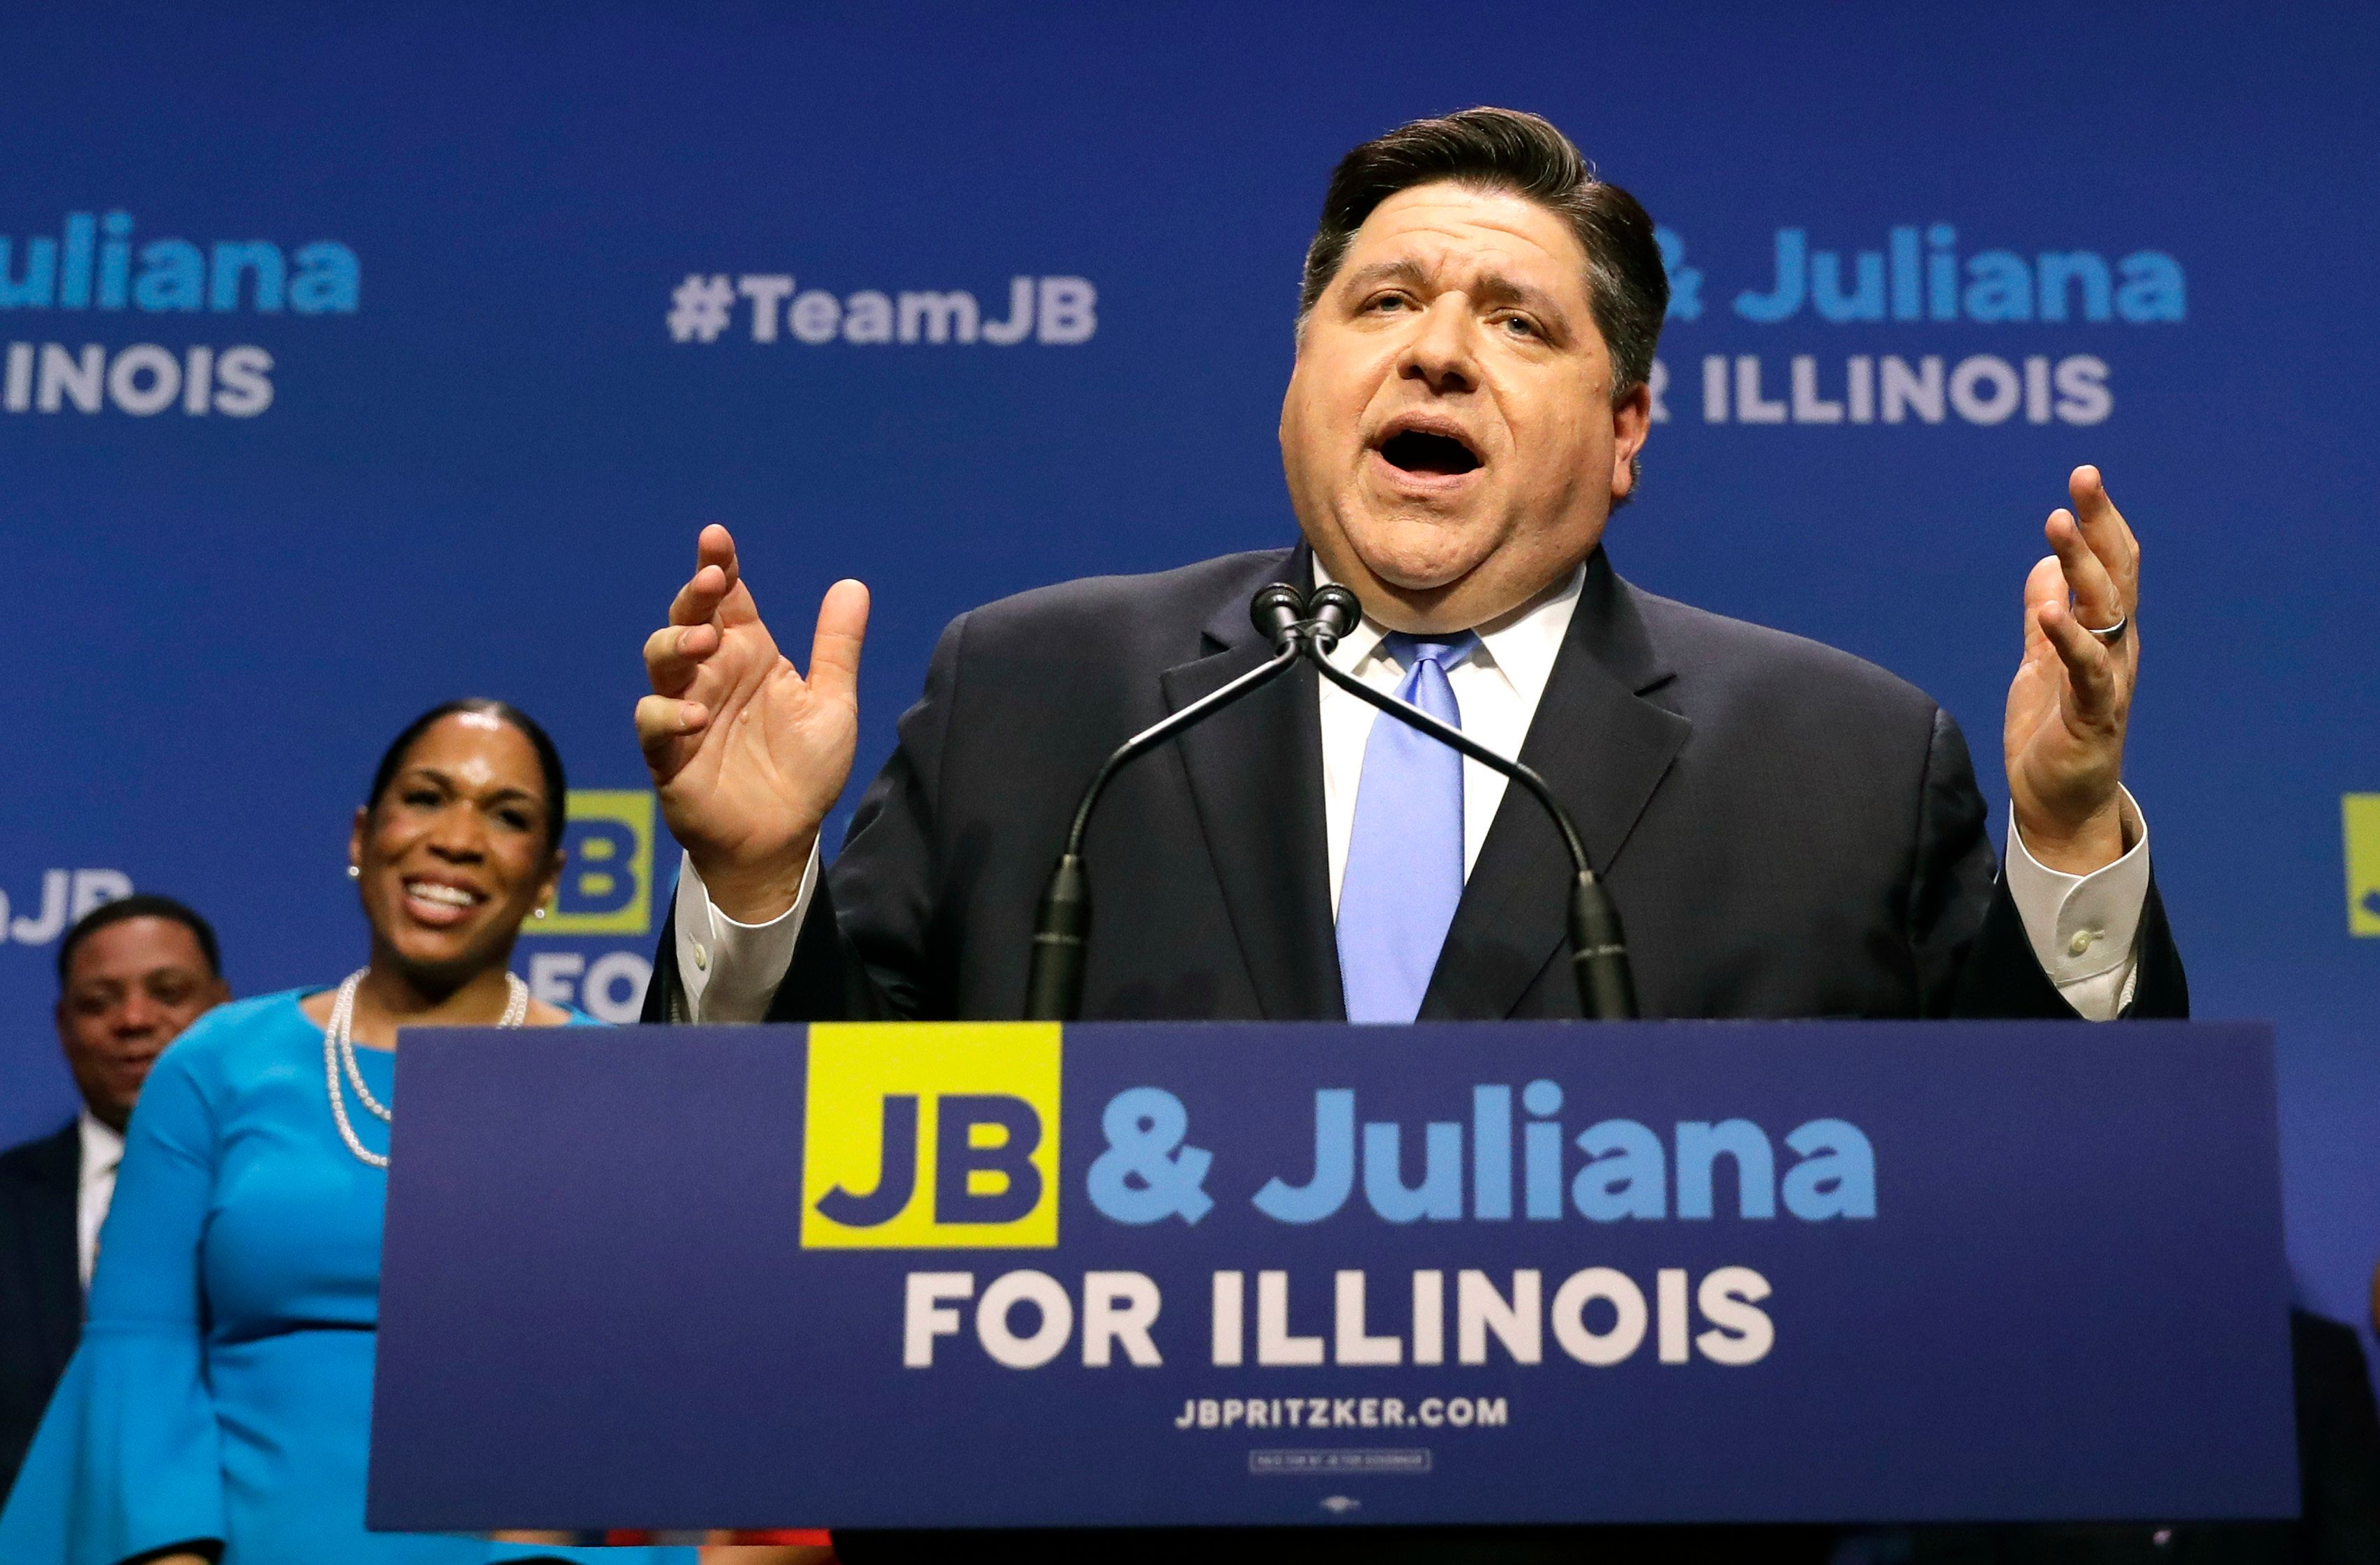 Democratic gubernatorial candidate JB Pritzker addresses the crowd after winning the Democratic gubernatorial primary over a field of five others Tuesday, March 20, 2018, in Chicago. Standing behind Pritzker is Lt. Governor candidate Juliana Stratton. (AP Photo/Charles Rex Arbogast)